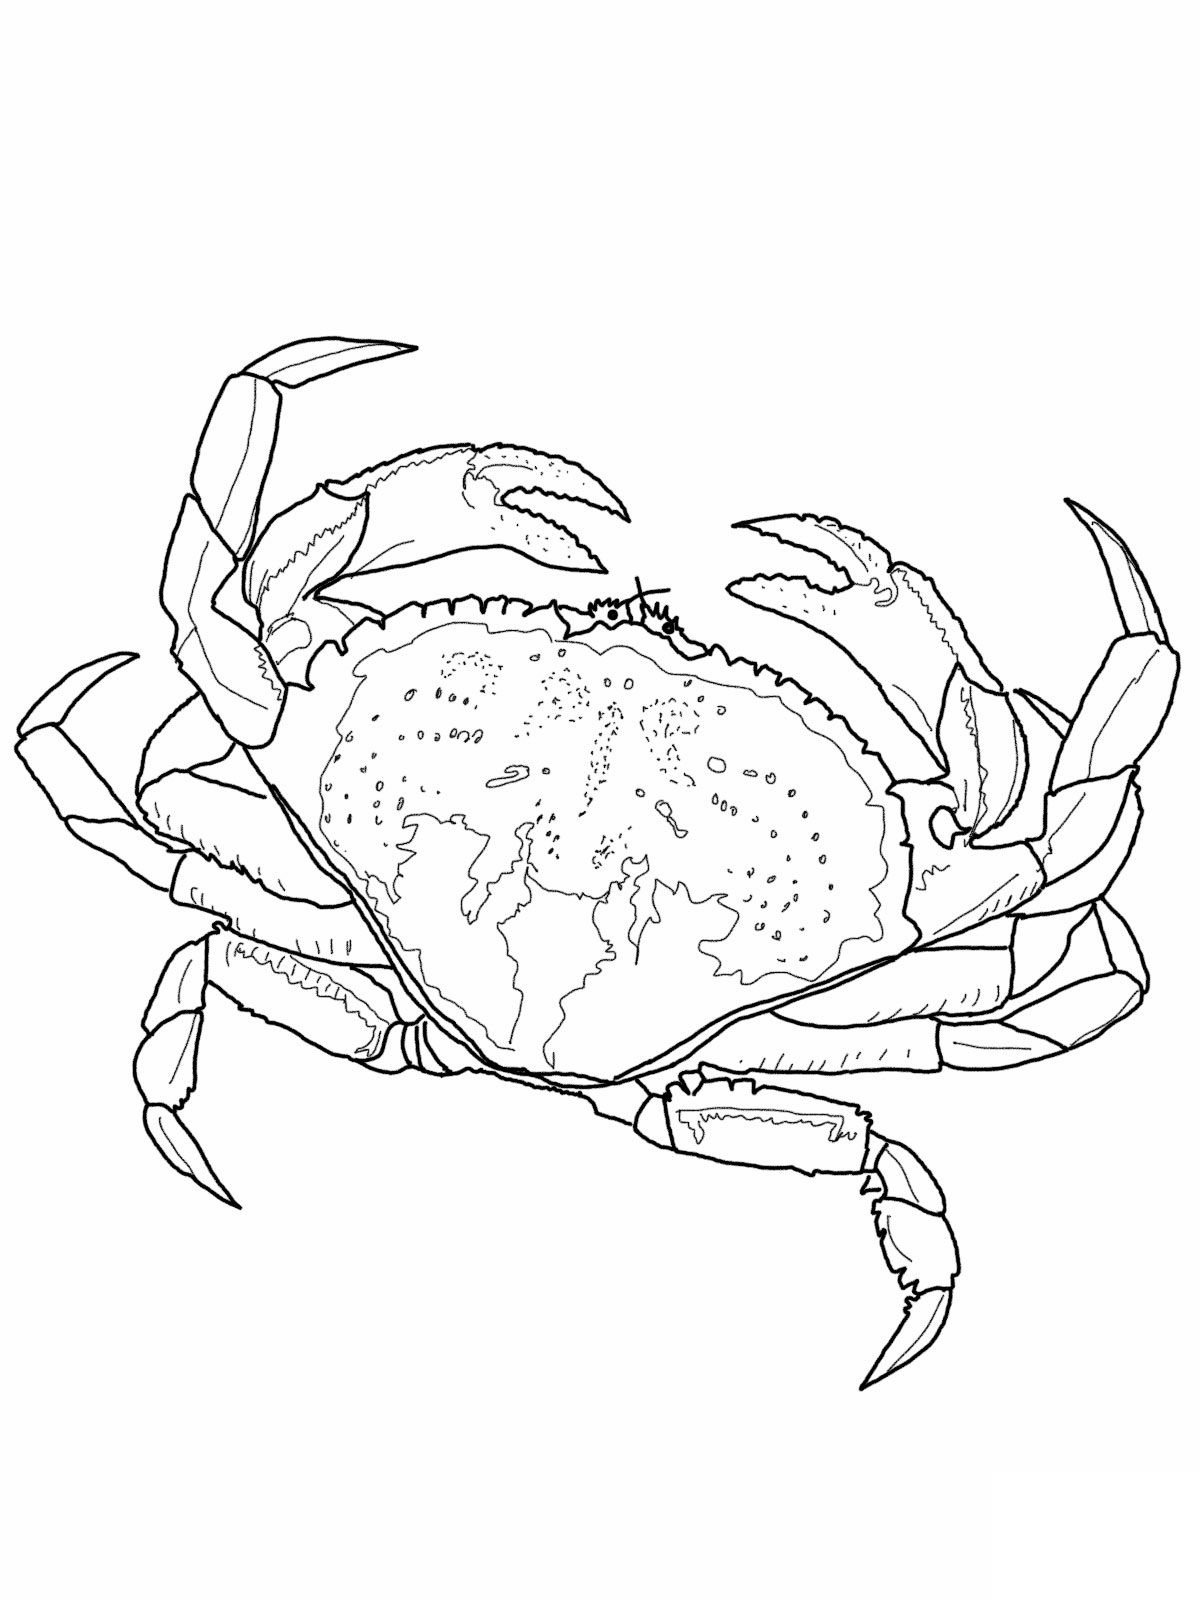 Pictures of Crab Coloring Pages | Digi\'s zee | Pinterest ...